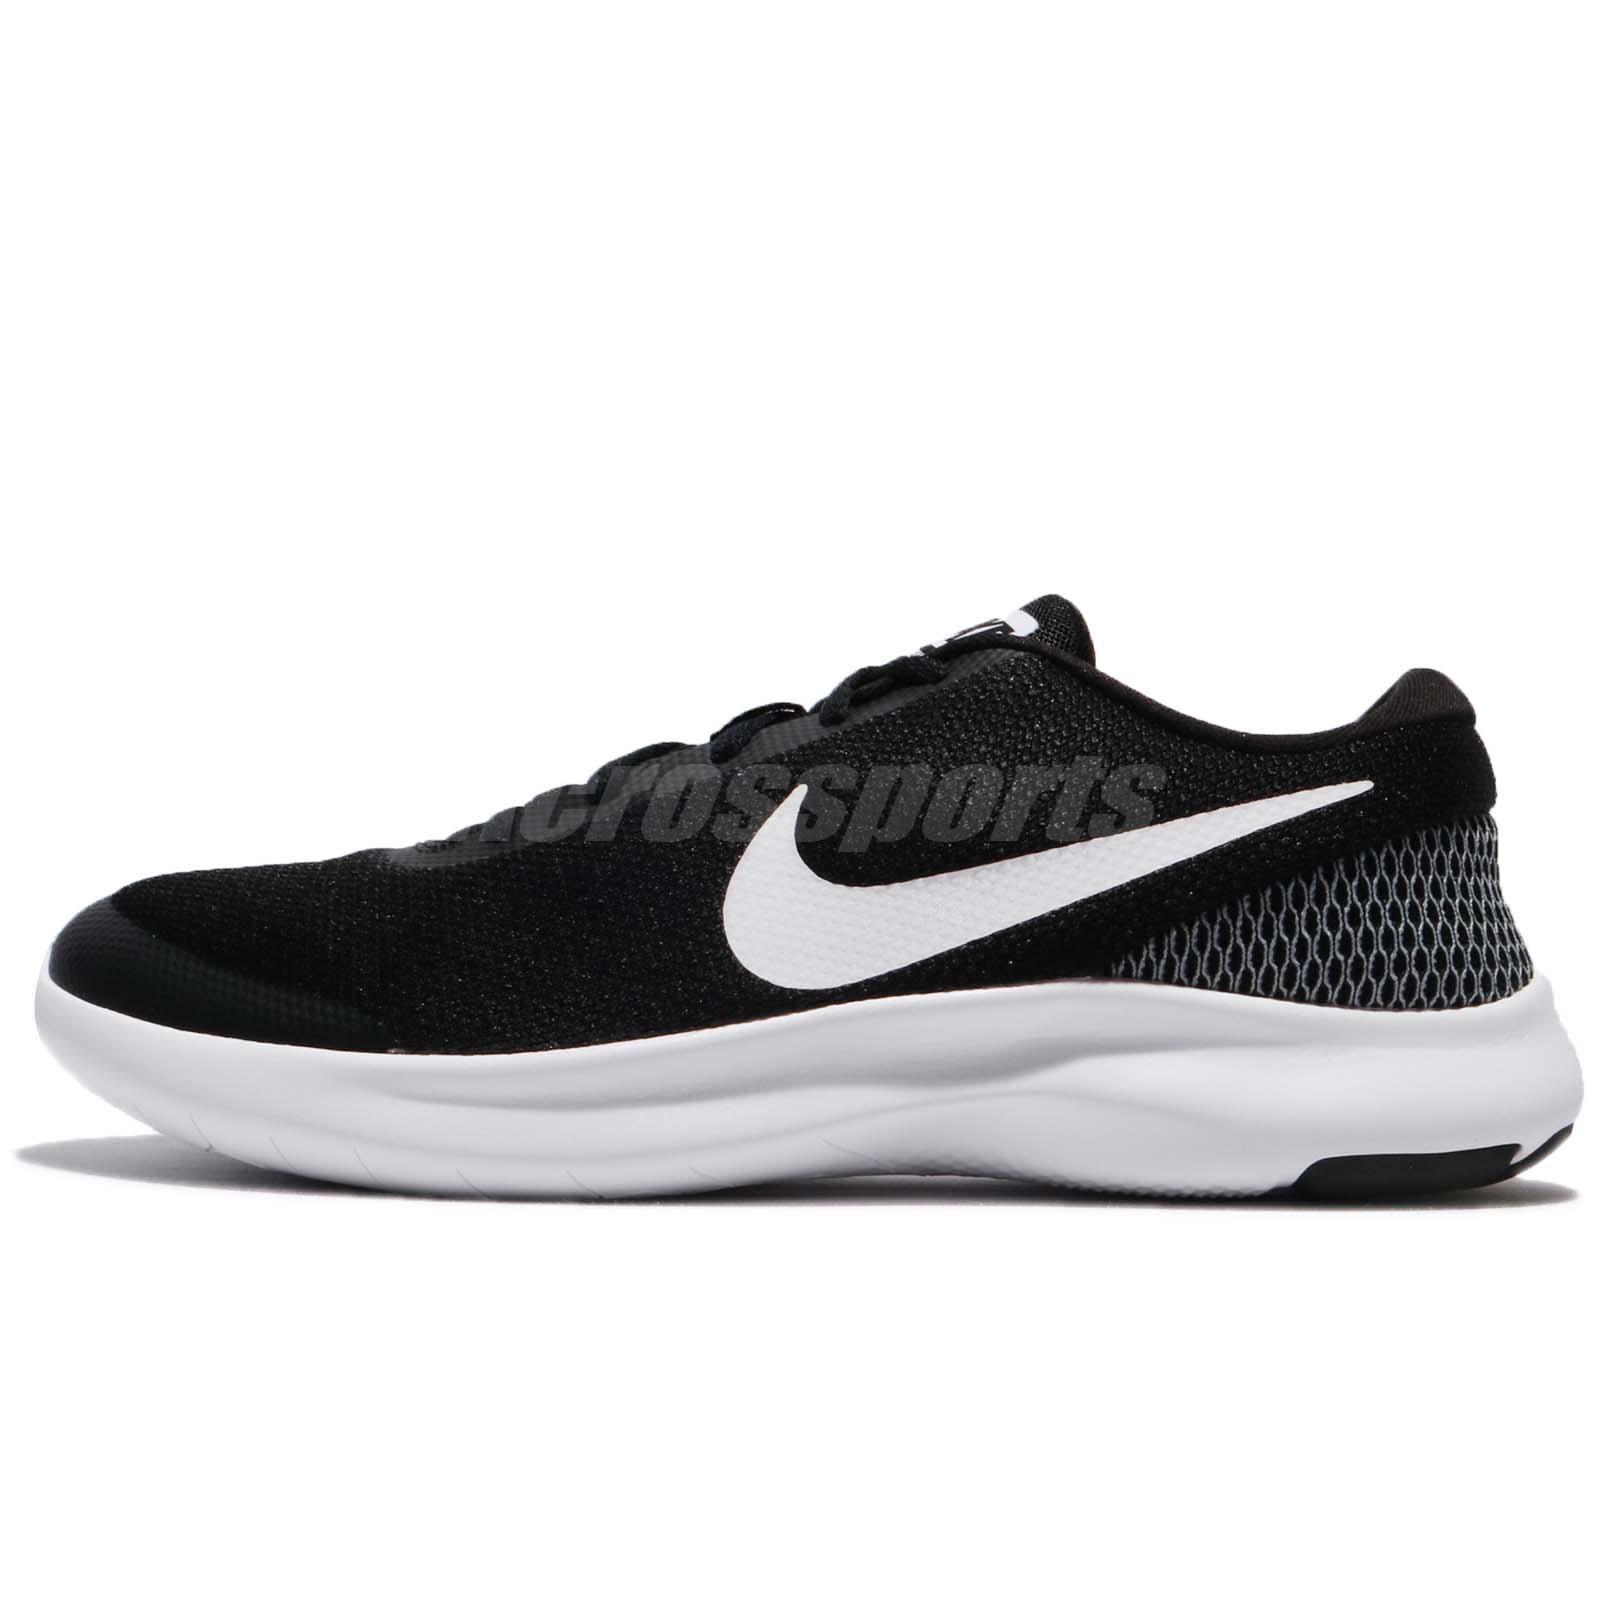 14008a8b3c2a5 Nike Flex Experience RN 7 VII Black White Men Running Shoes Sneakers  908985-001